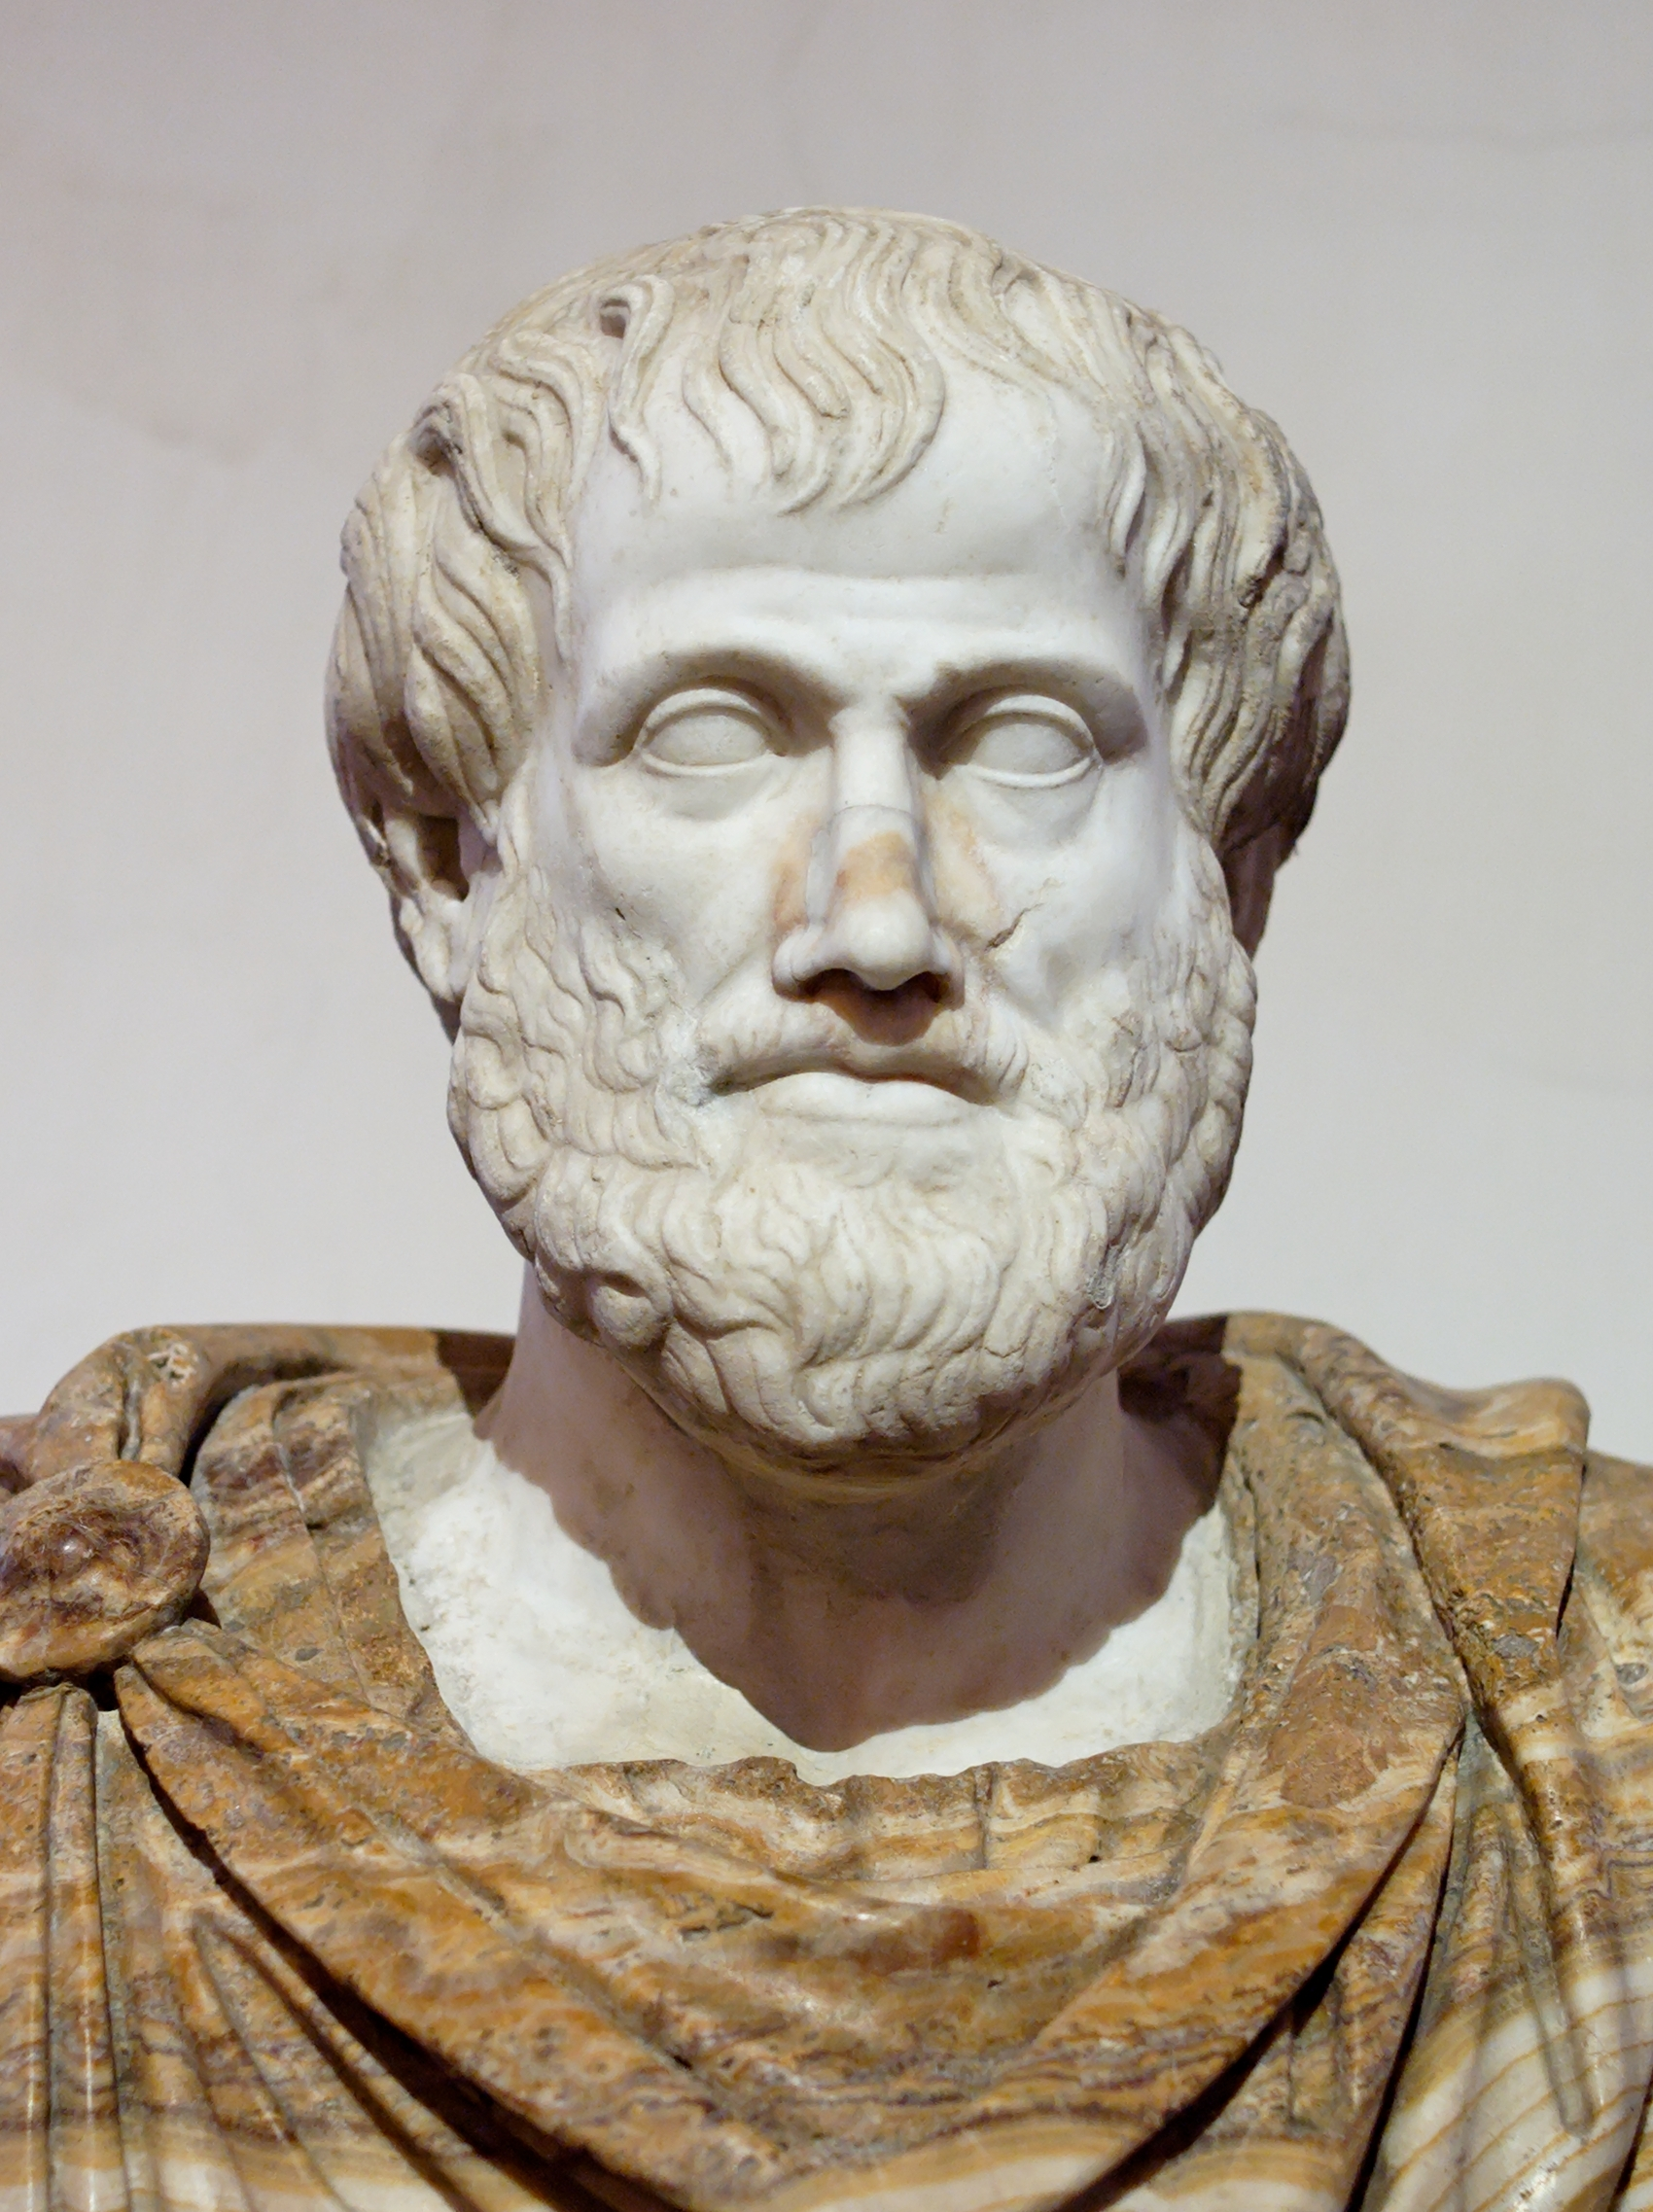 https://i2.wp.com/upload.wikimedia.org/wikipedia/commons/a/ae/Aristotle_Altemps_Inv8575.jpg